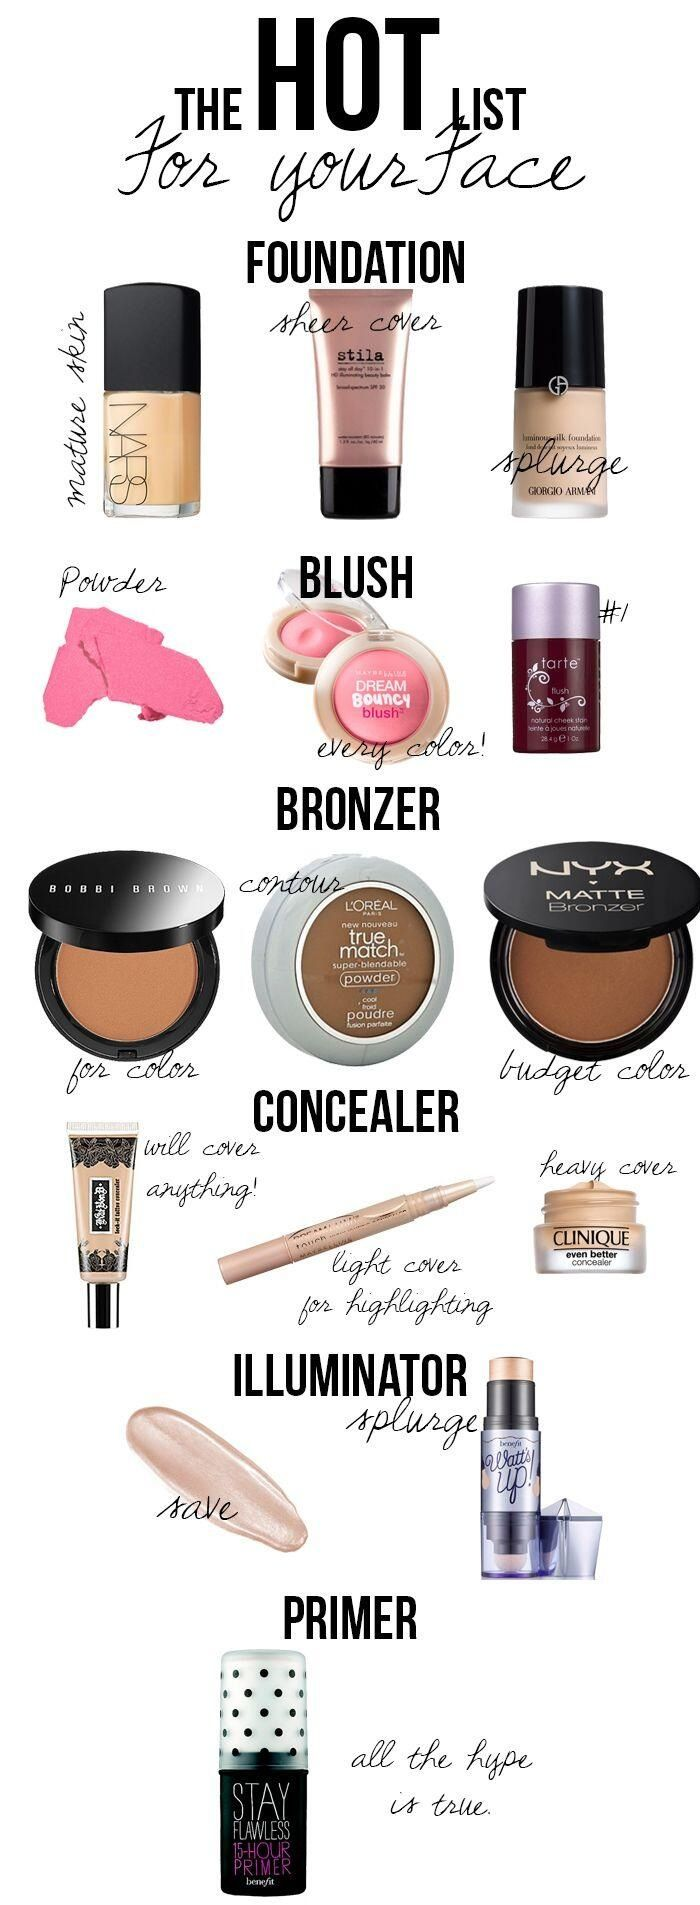 Face makeup must haves beautymake up Pinterest